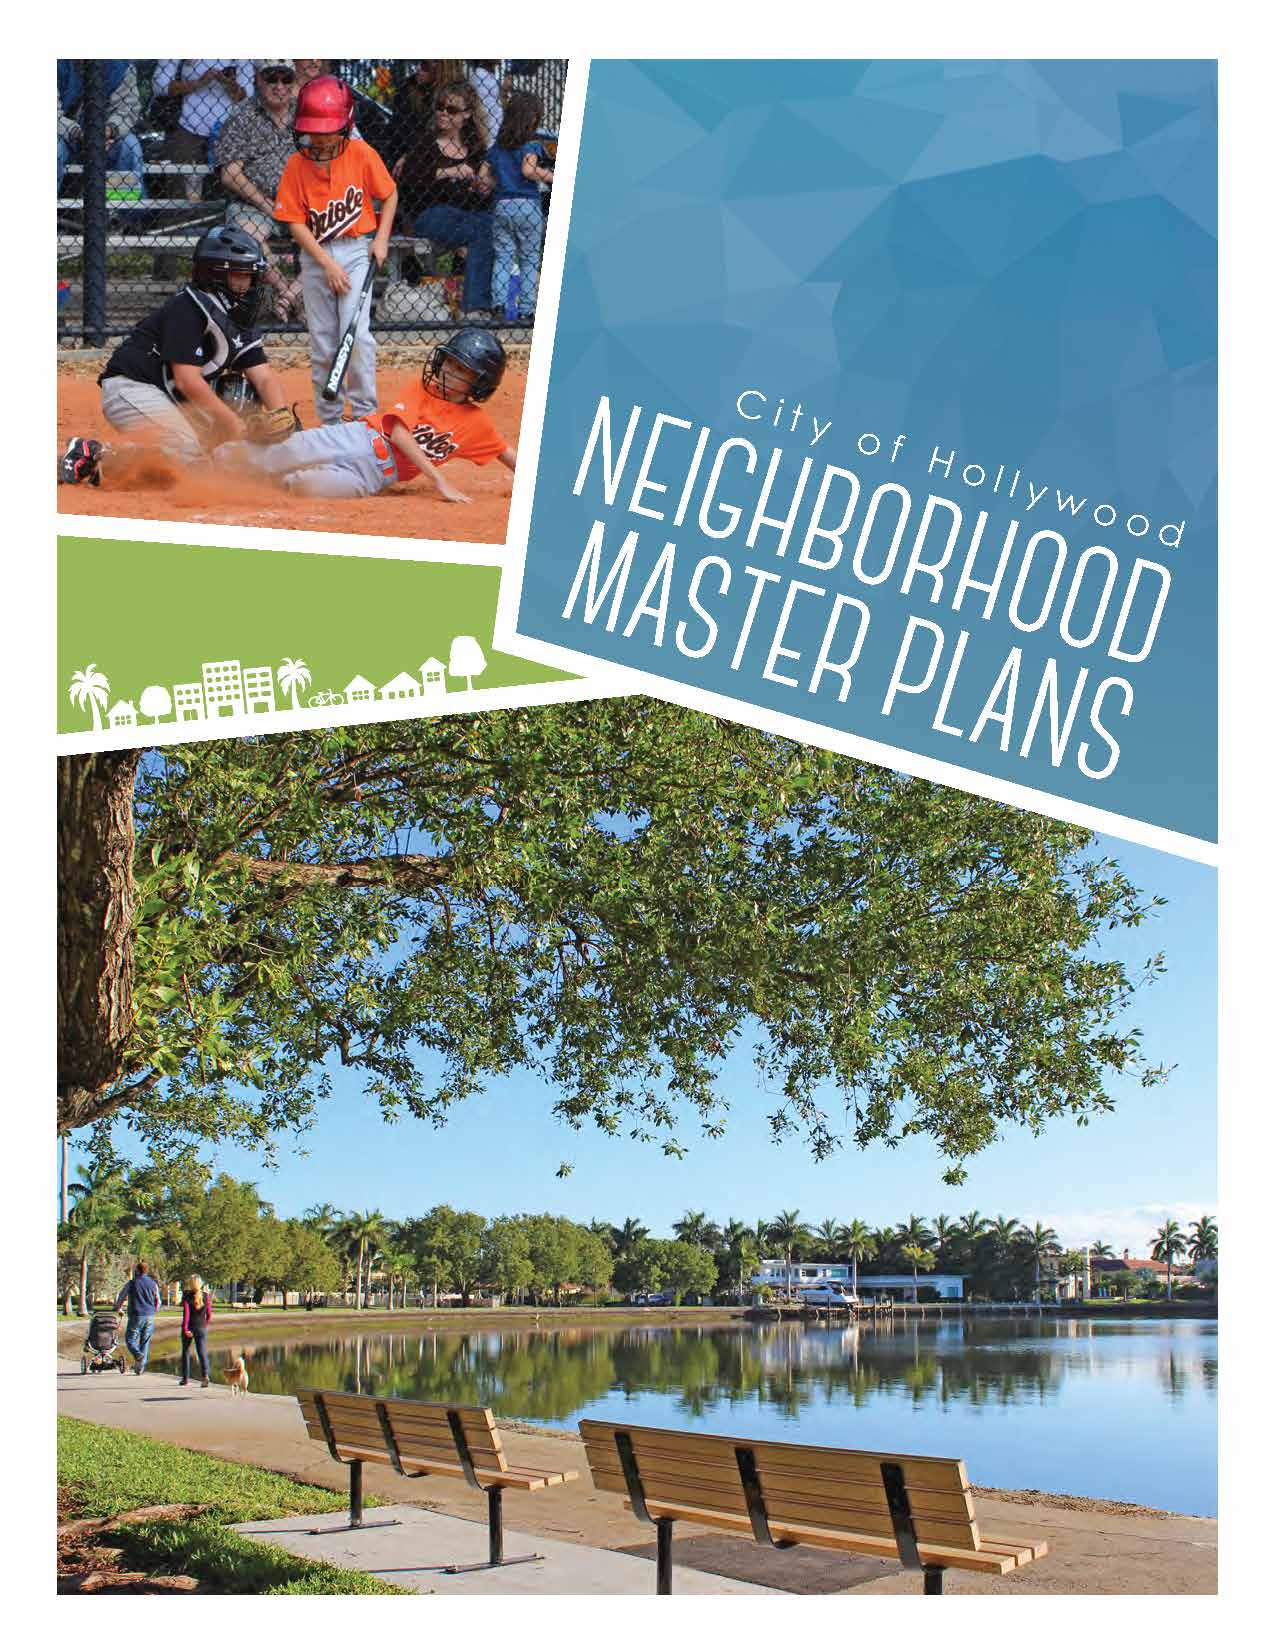 Neighborhood Master Plan